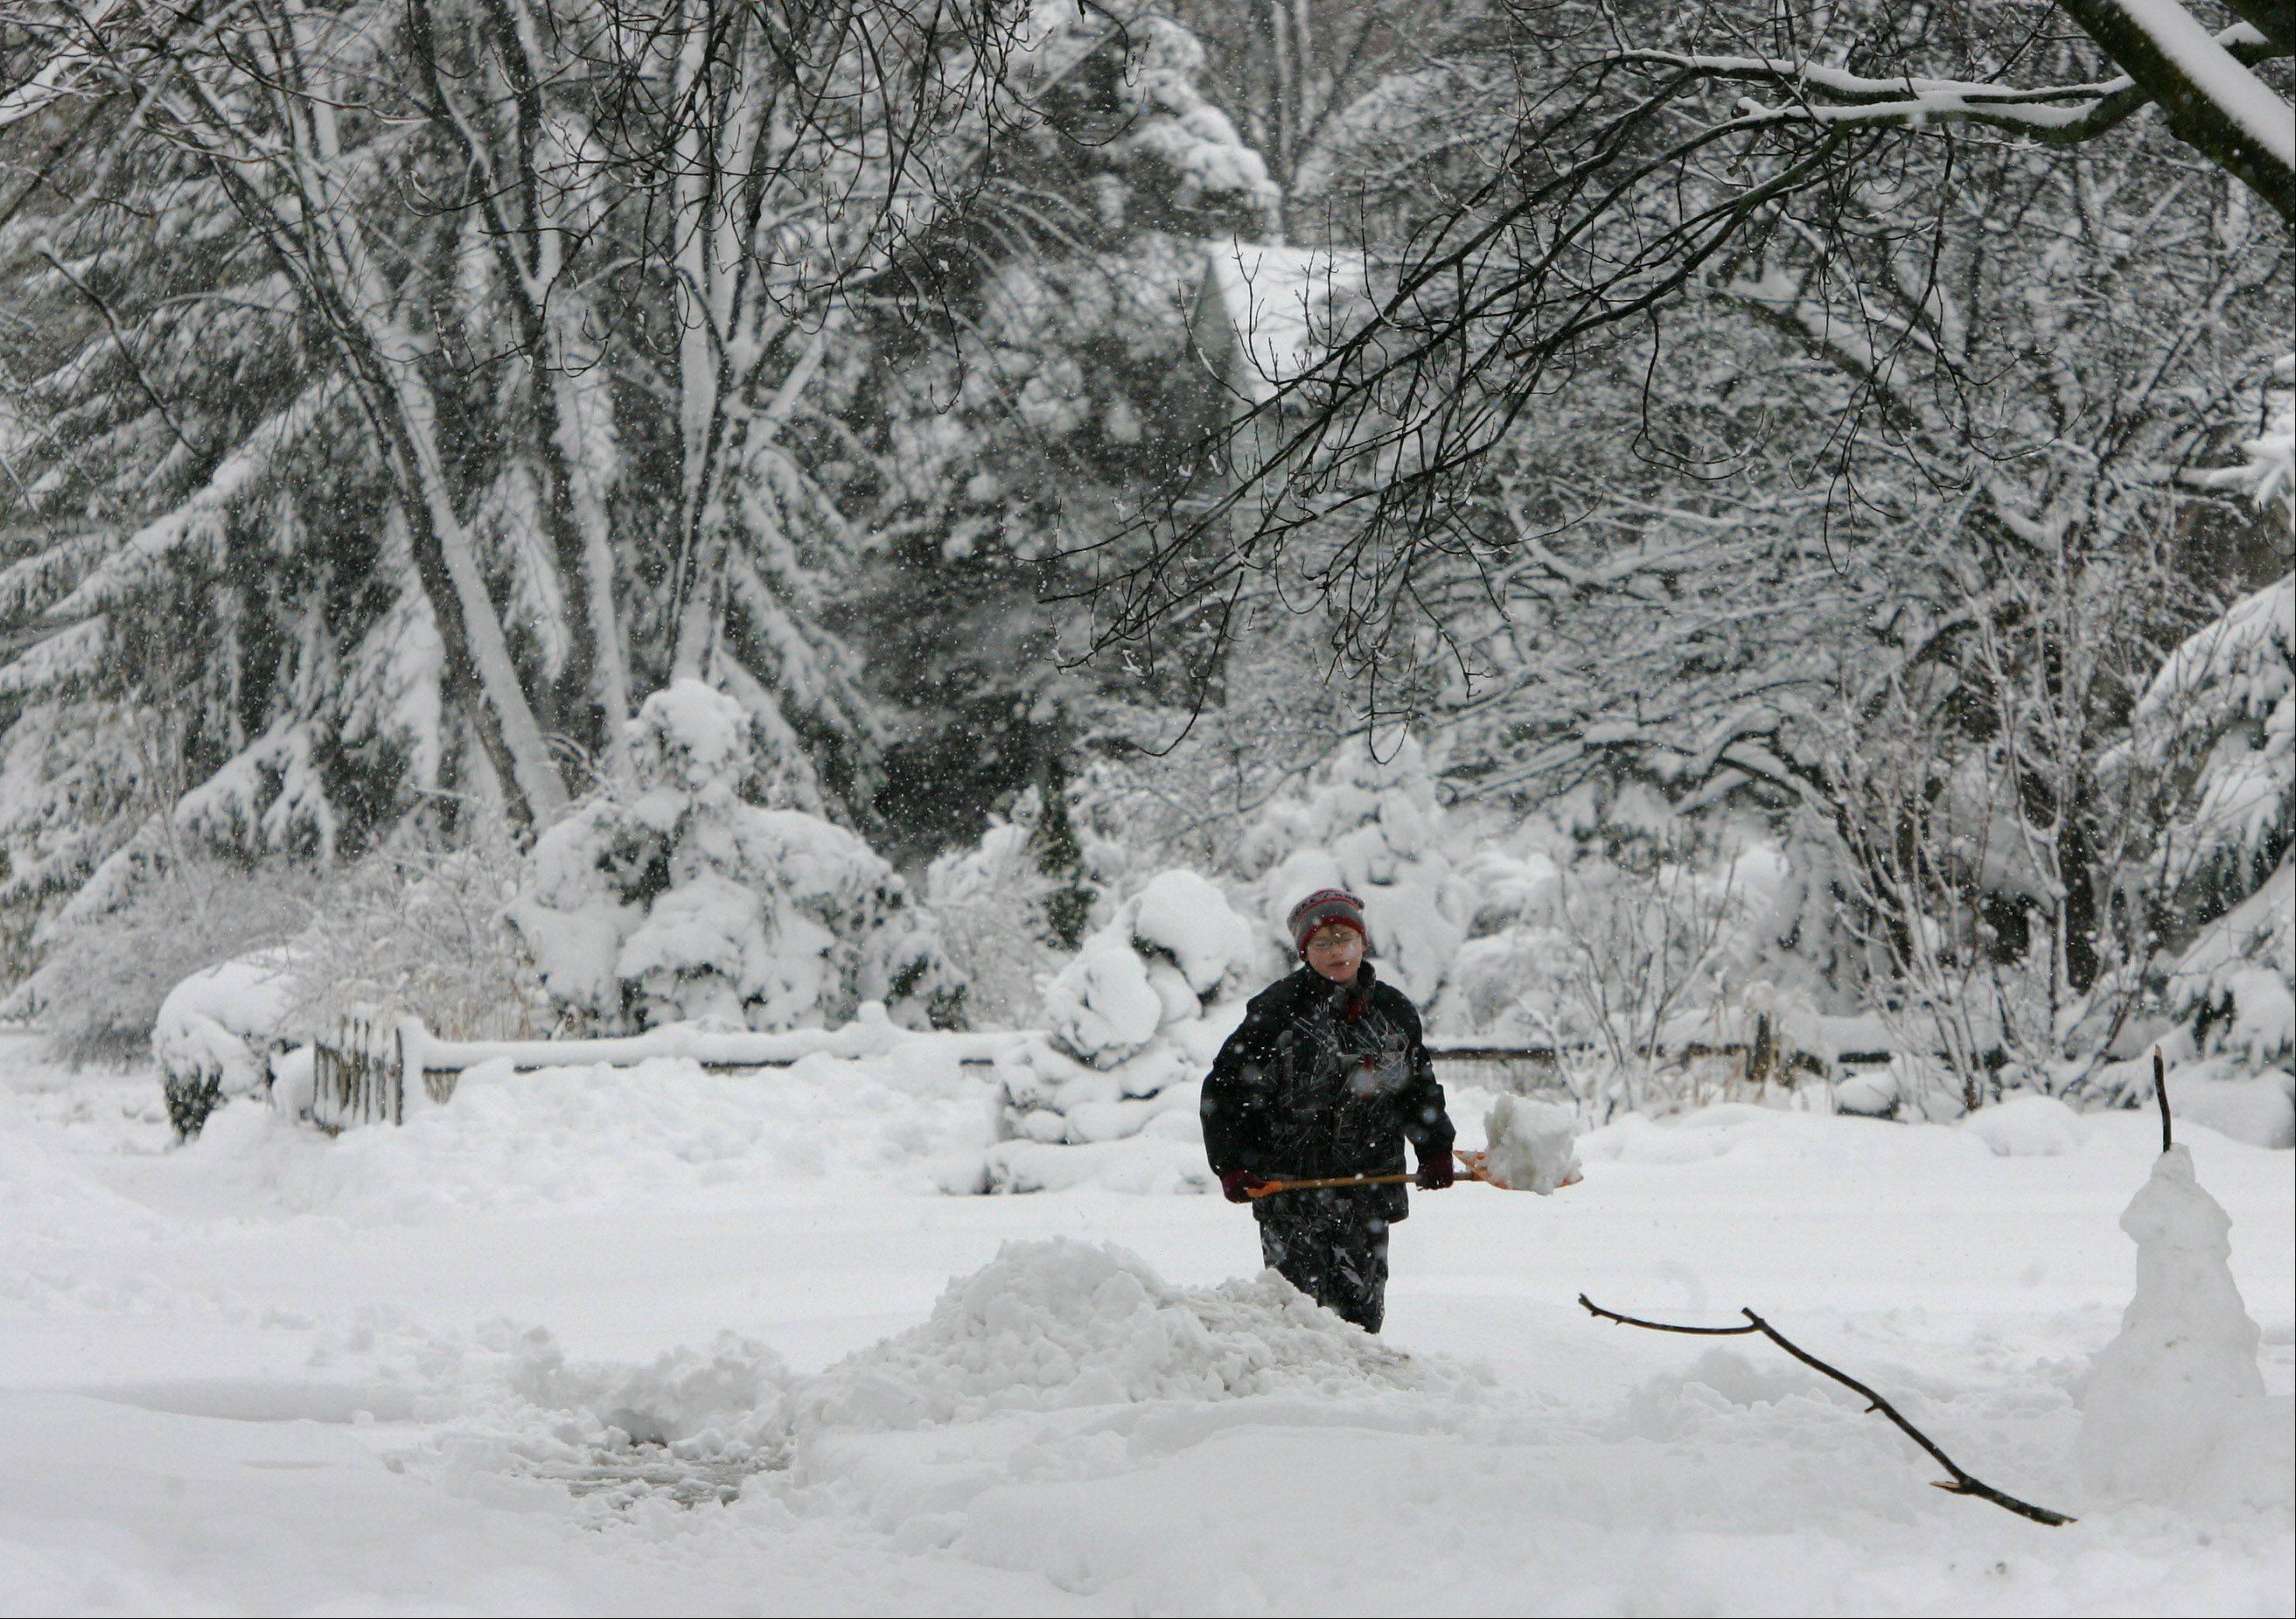 Oscar Tilford, 11, of Round Lake, shovels the driveway of his grandparents in Mundelein as area residents and businesses dig out Wednesday after a snowstorm pounded Lake County yesterday. Round Lake schools were closed for a snow day.